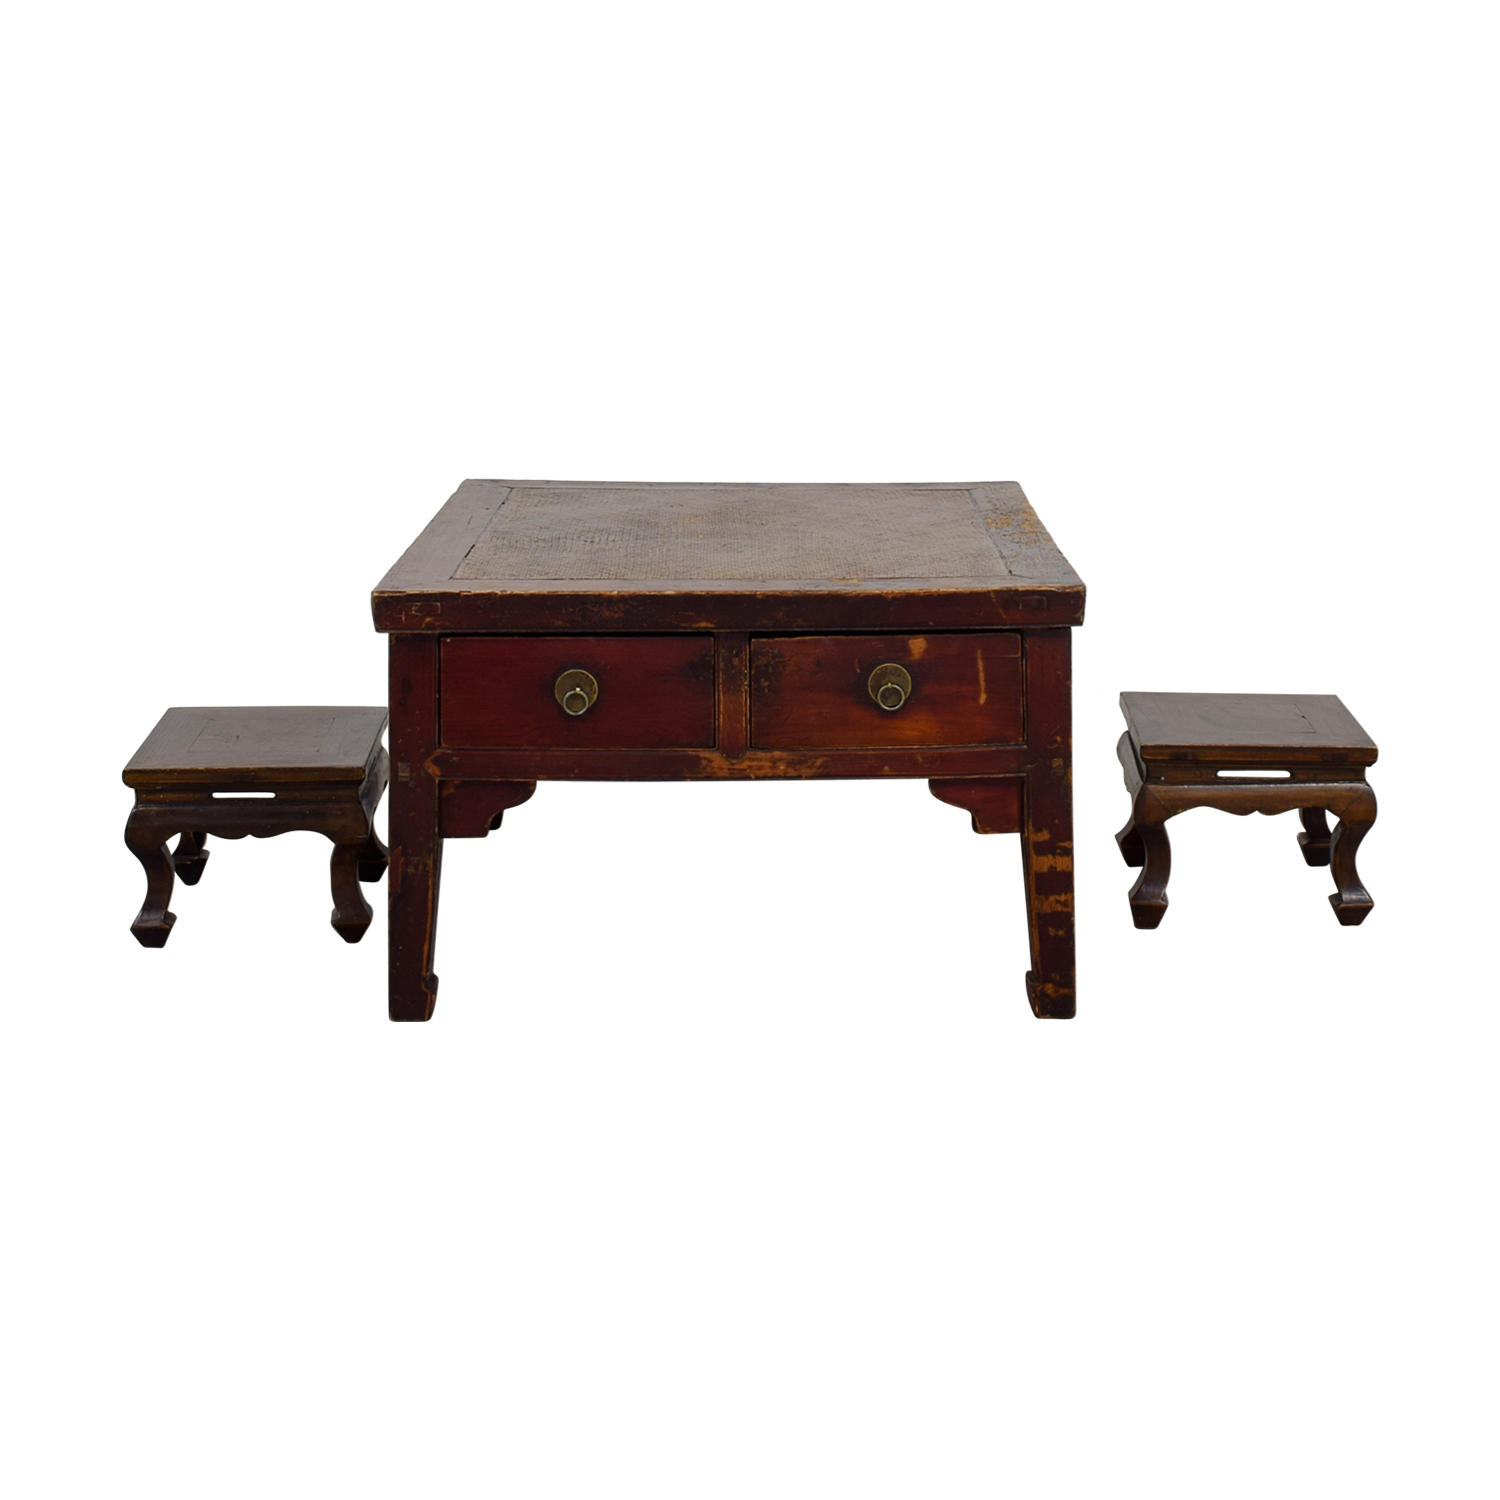 Genial 90% OFF   Antique Coffee Table With Two Stools / Tables